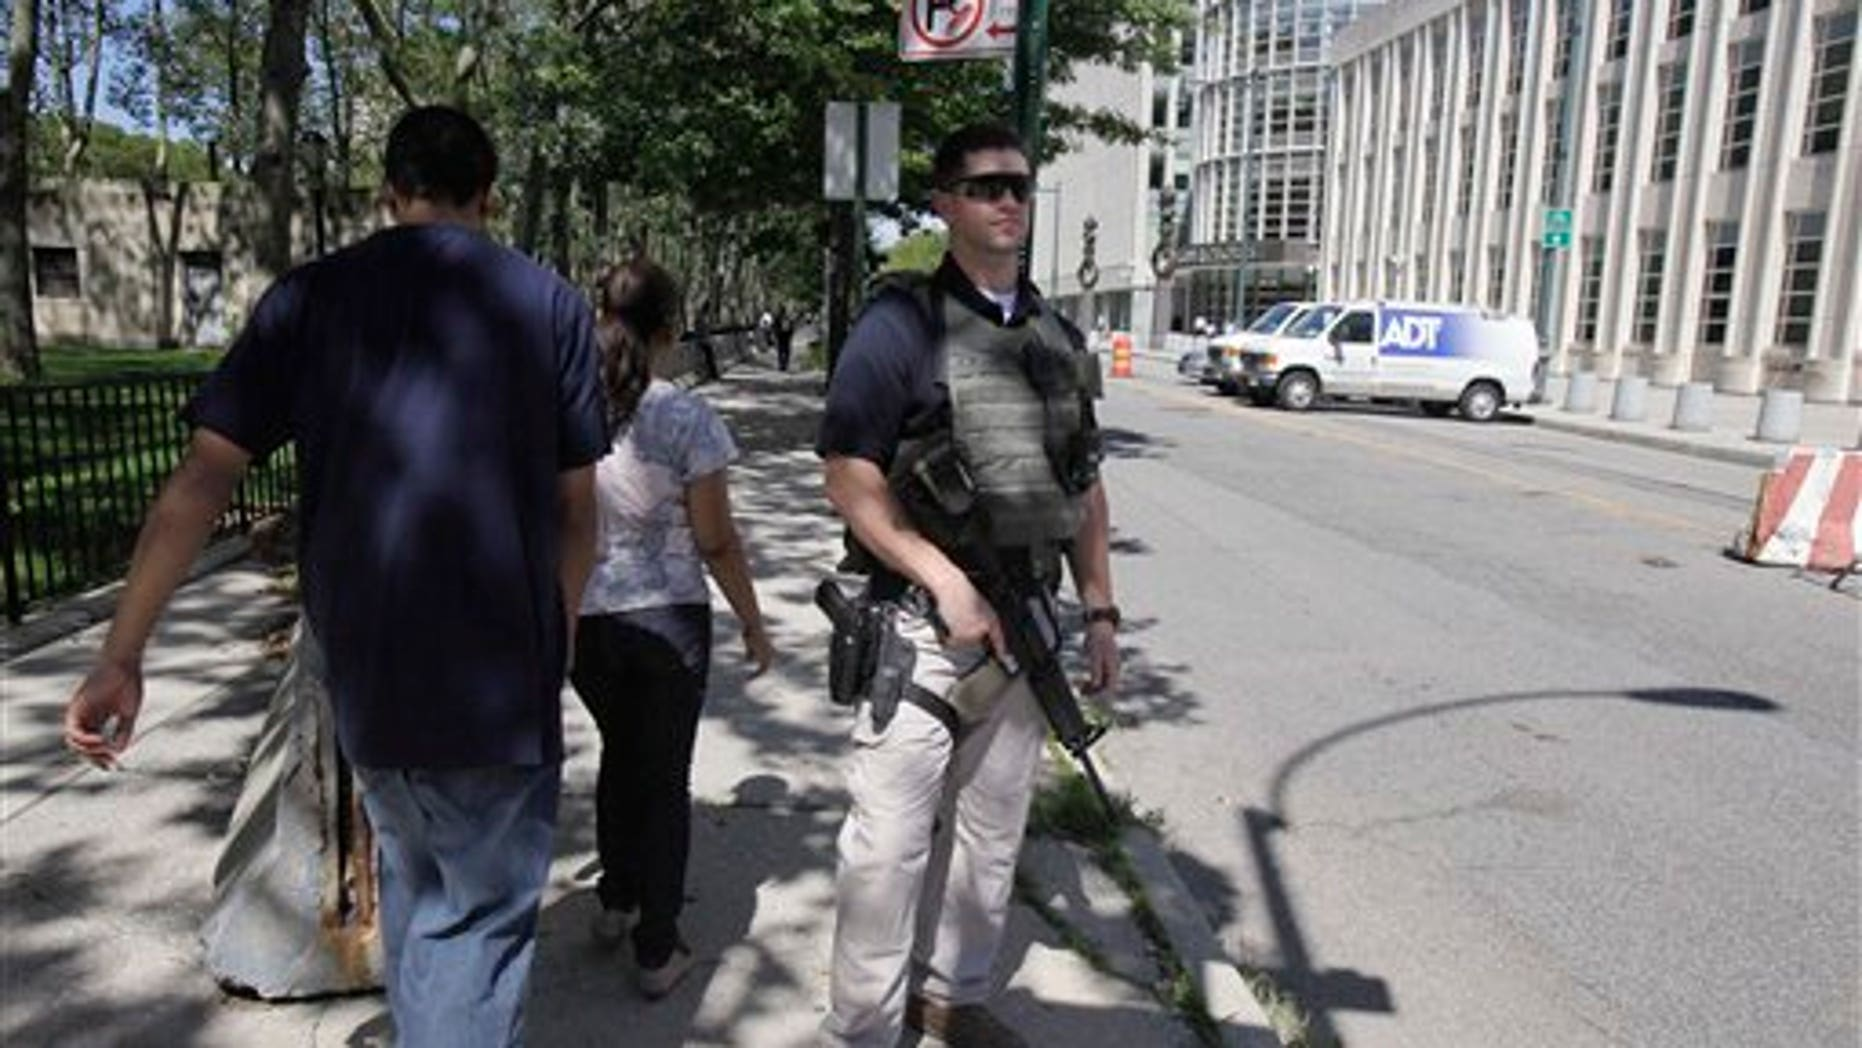 Sept 9: An armed U.S. Marshal stands guard outside the Federal Courthouse in Brooklyn. New York City resident Agron Hasbajrami, in an indictment unsealed in Brooklyn, has been charged with providing material support to a terrorist organization by plotting to travel to Pakistan to join a radical fighting group.